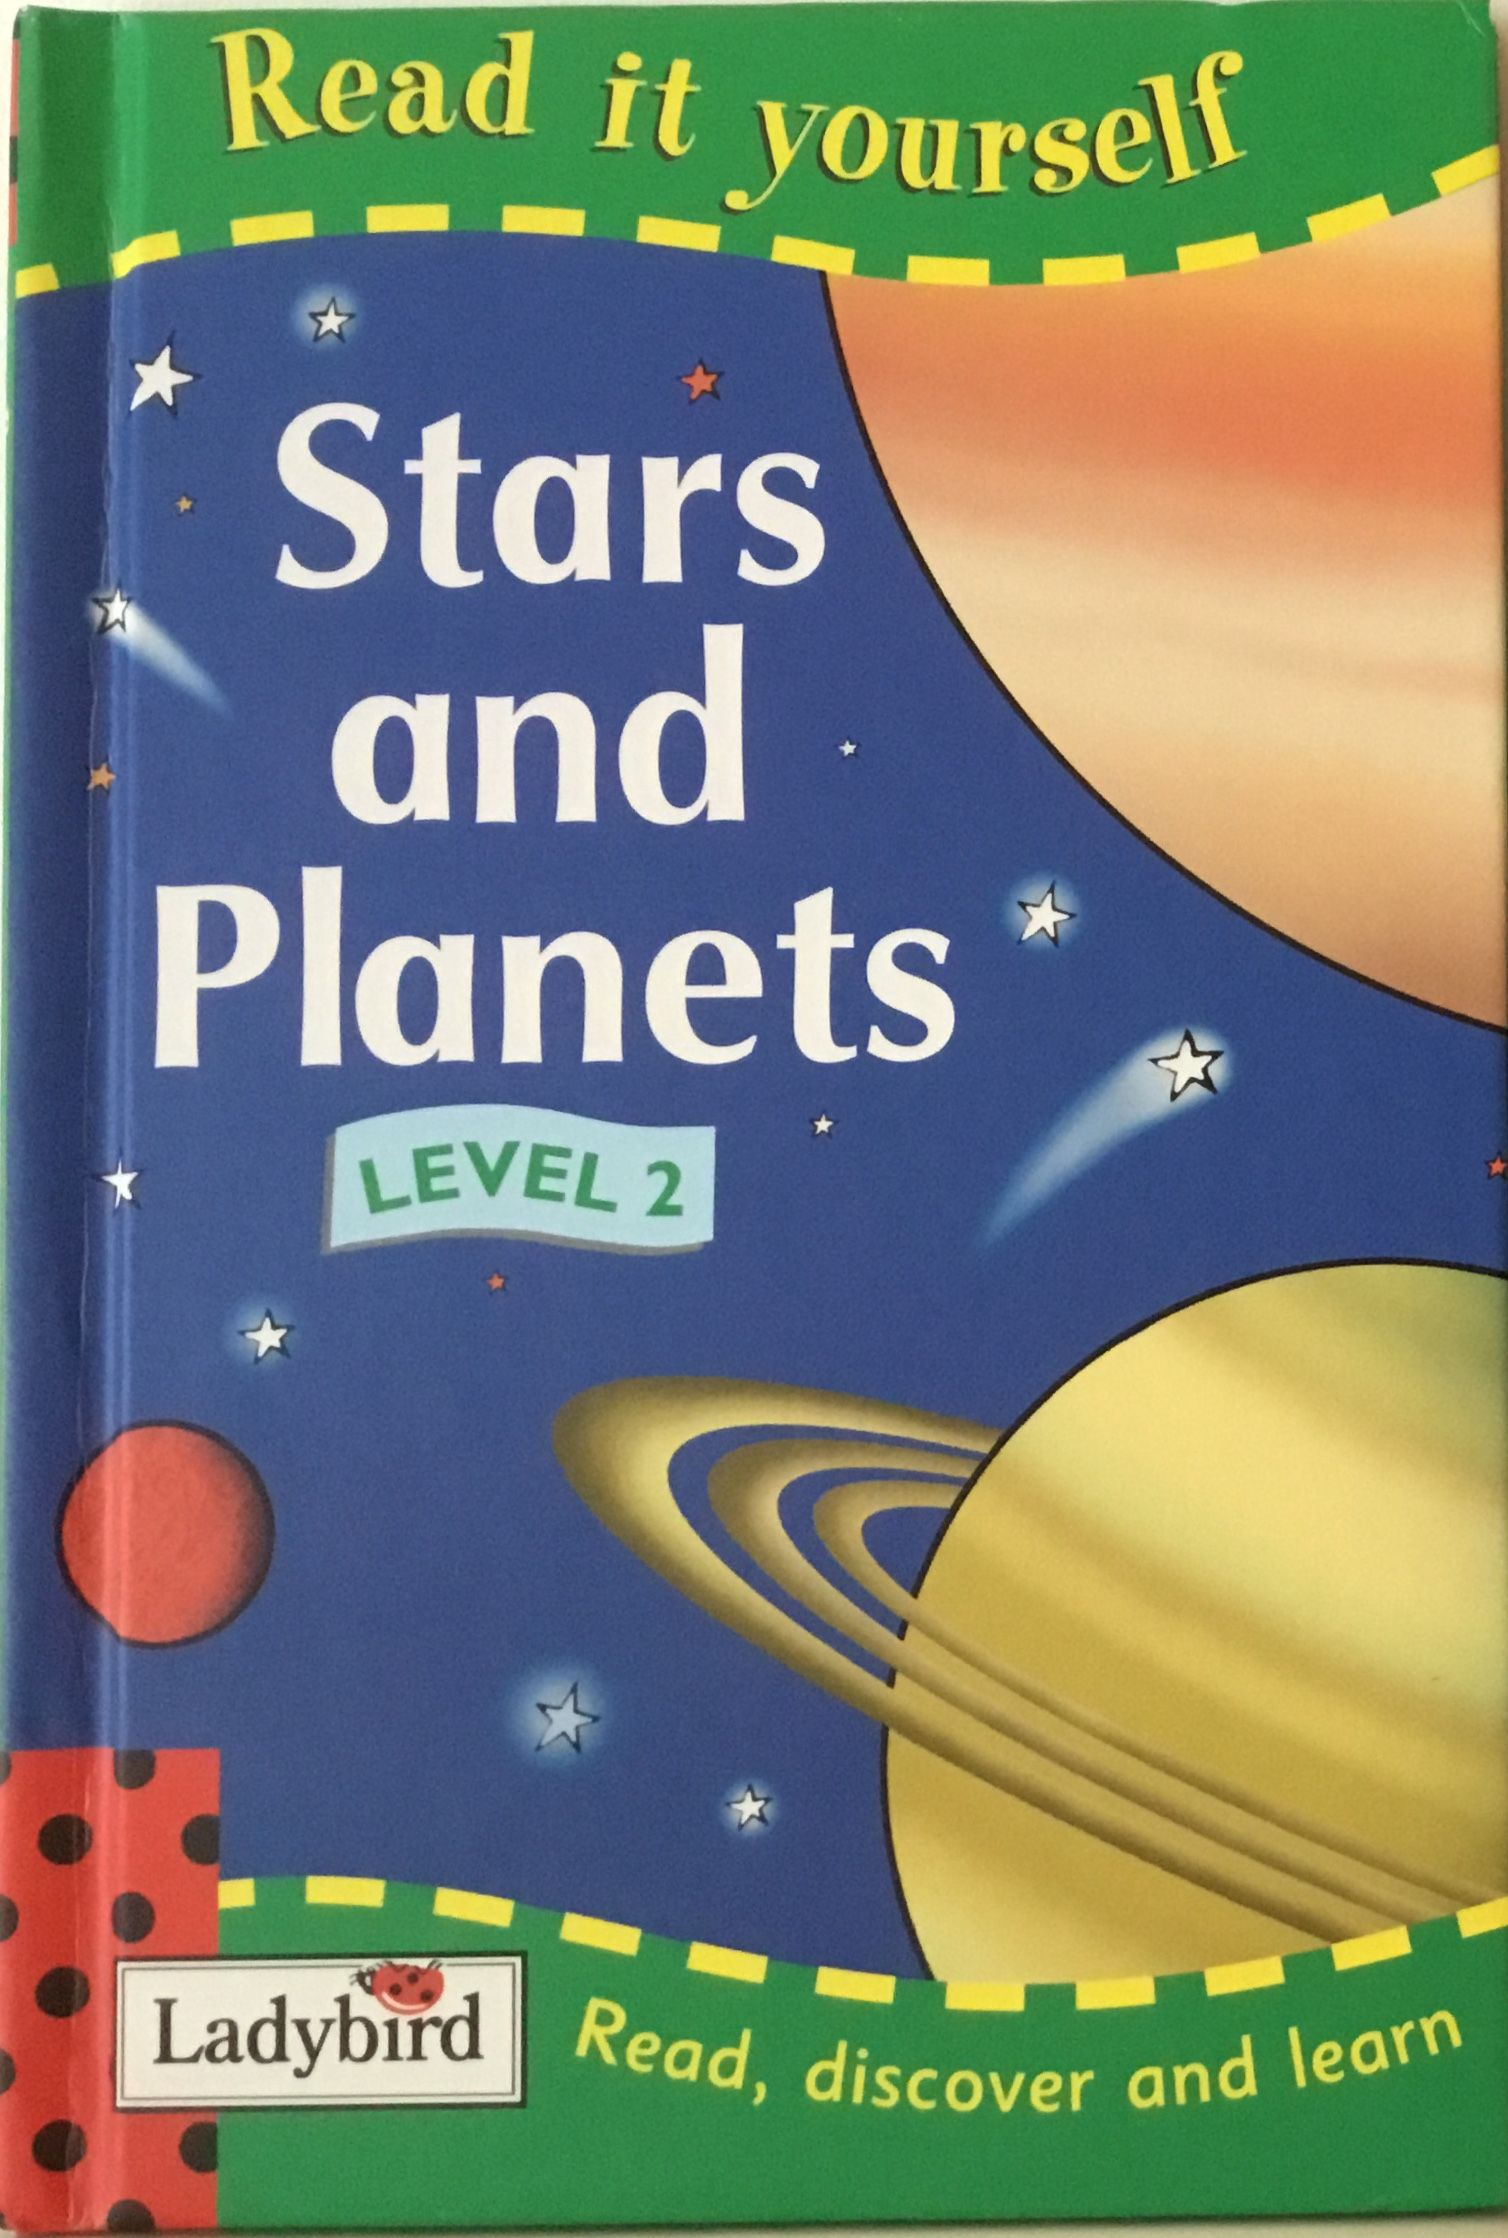 Ladybird Book Read It Yourself Series Level 2 Stars And